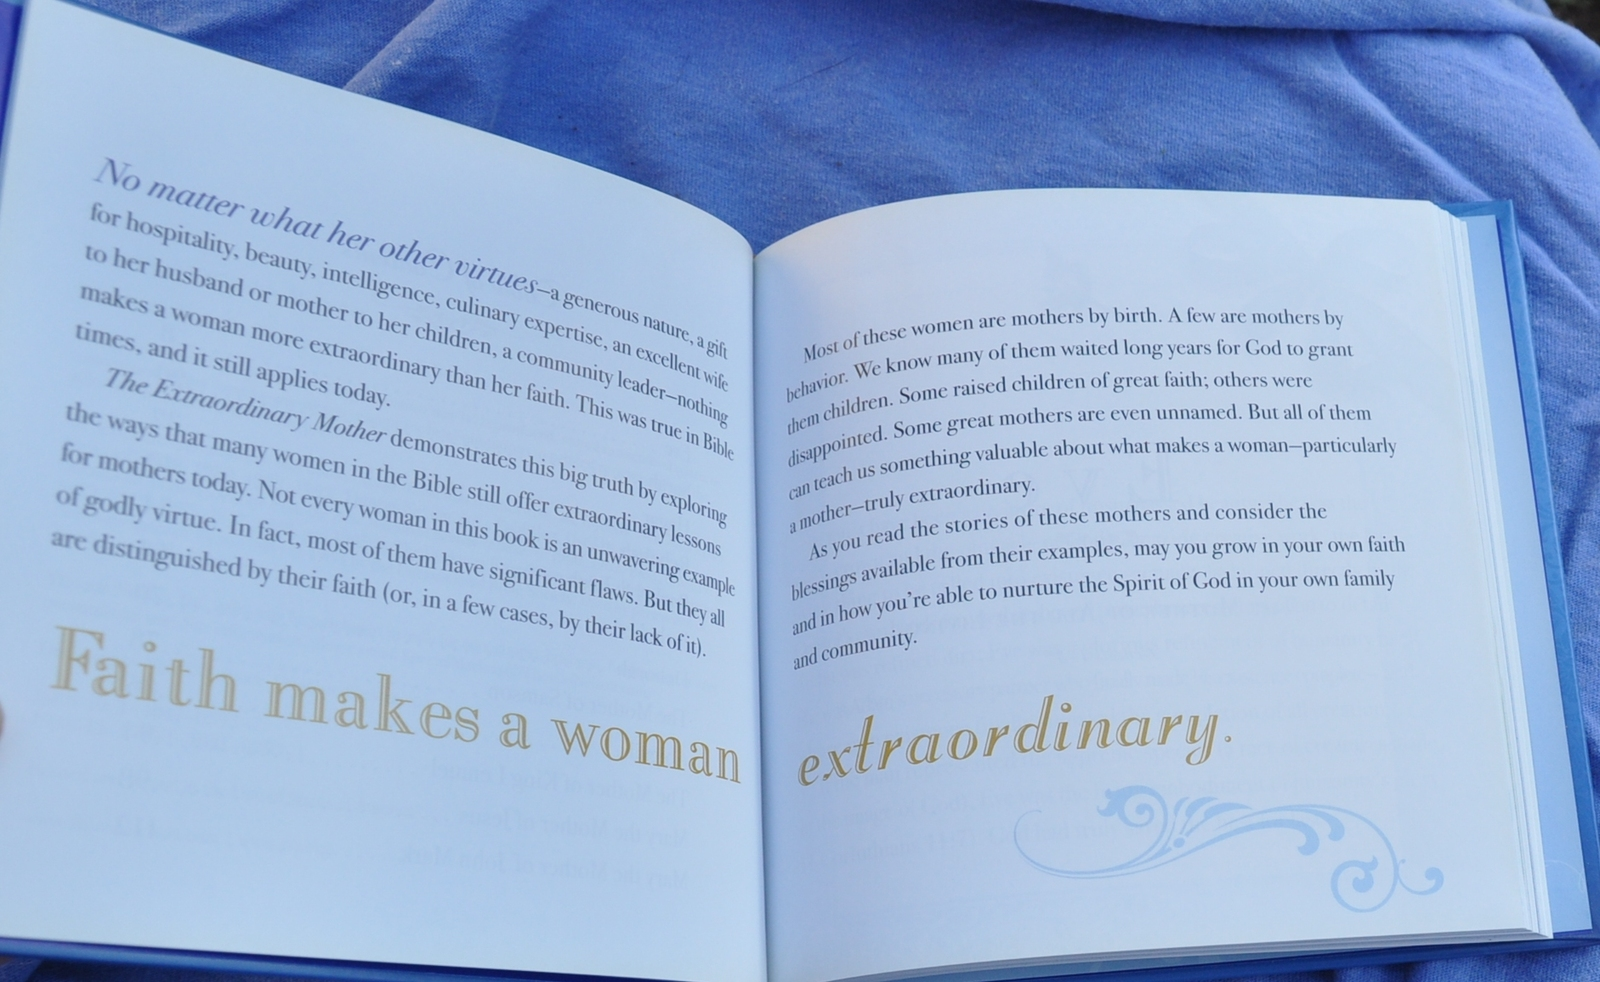 Extraordinary Mother BK - Bible Women lessons & inspirations to Today's Moms